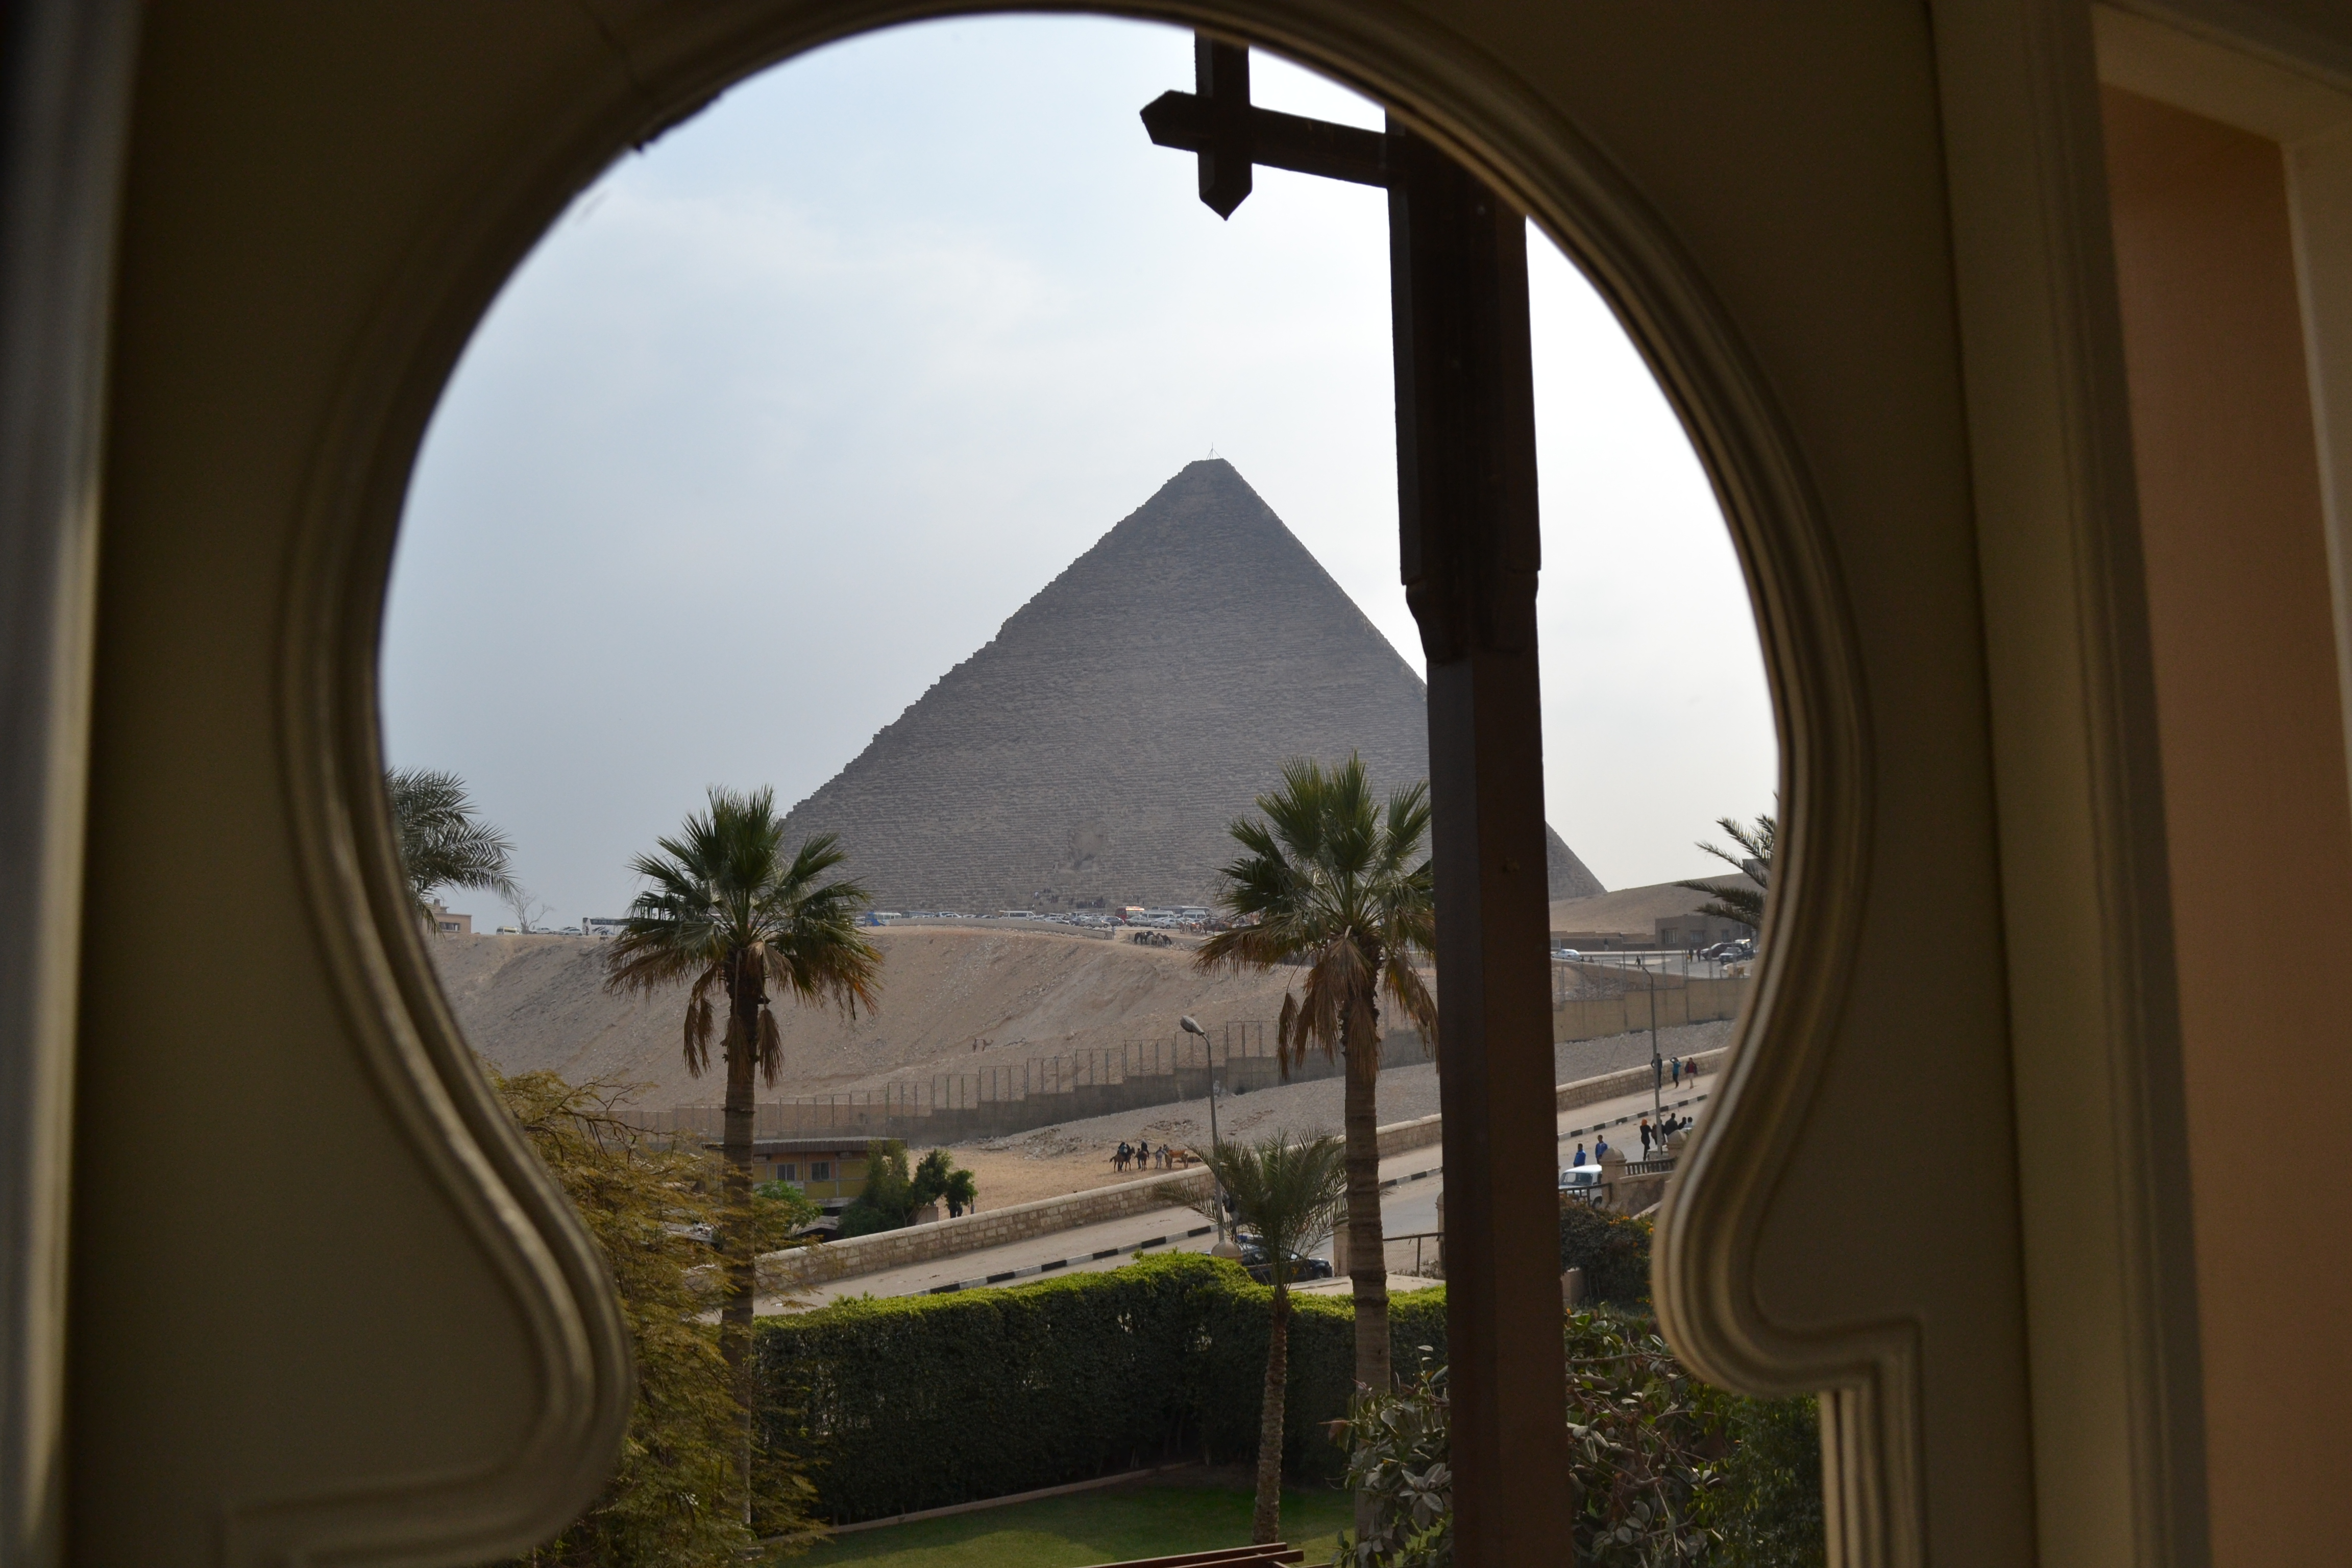 View from inside the 'Carter Suite' which hosted Jimmy Carter. Many of Mena House's rooms feature similar views.